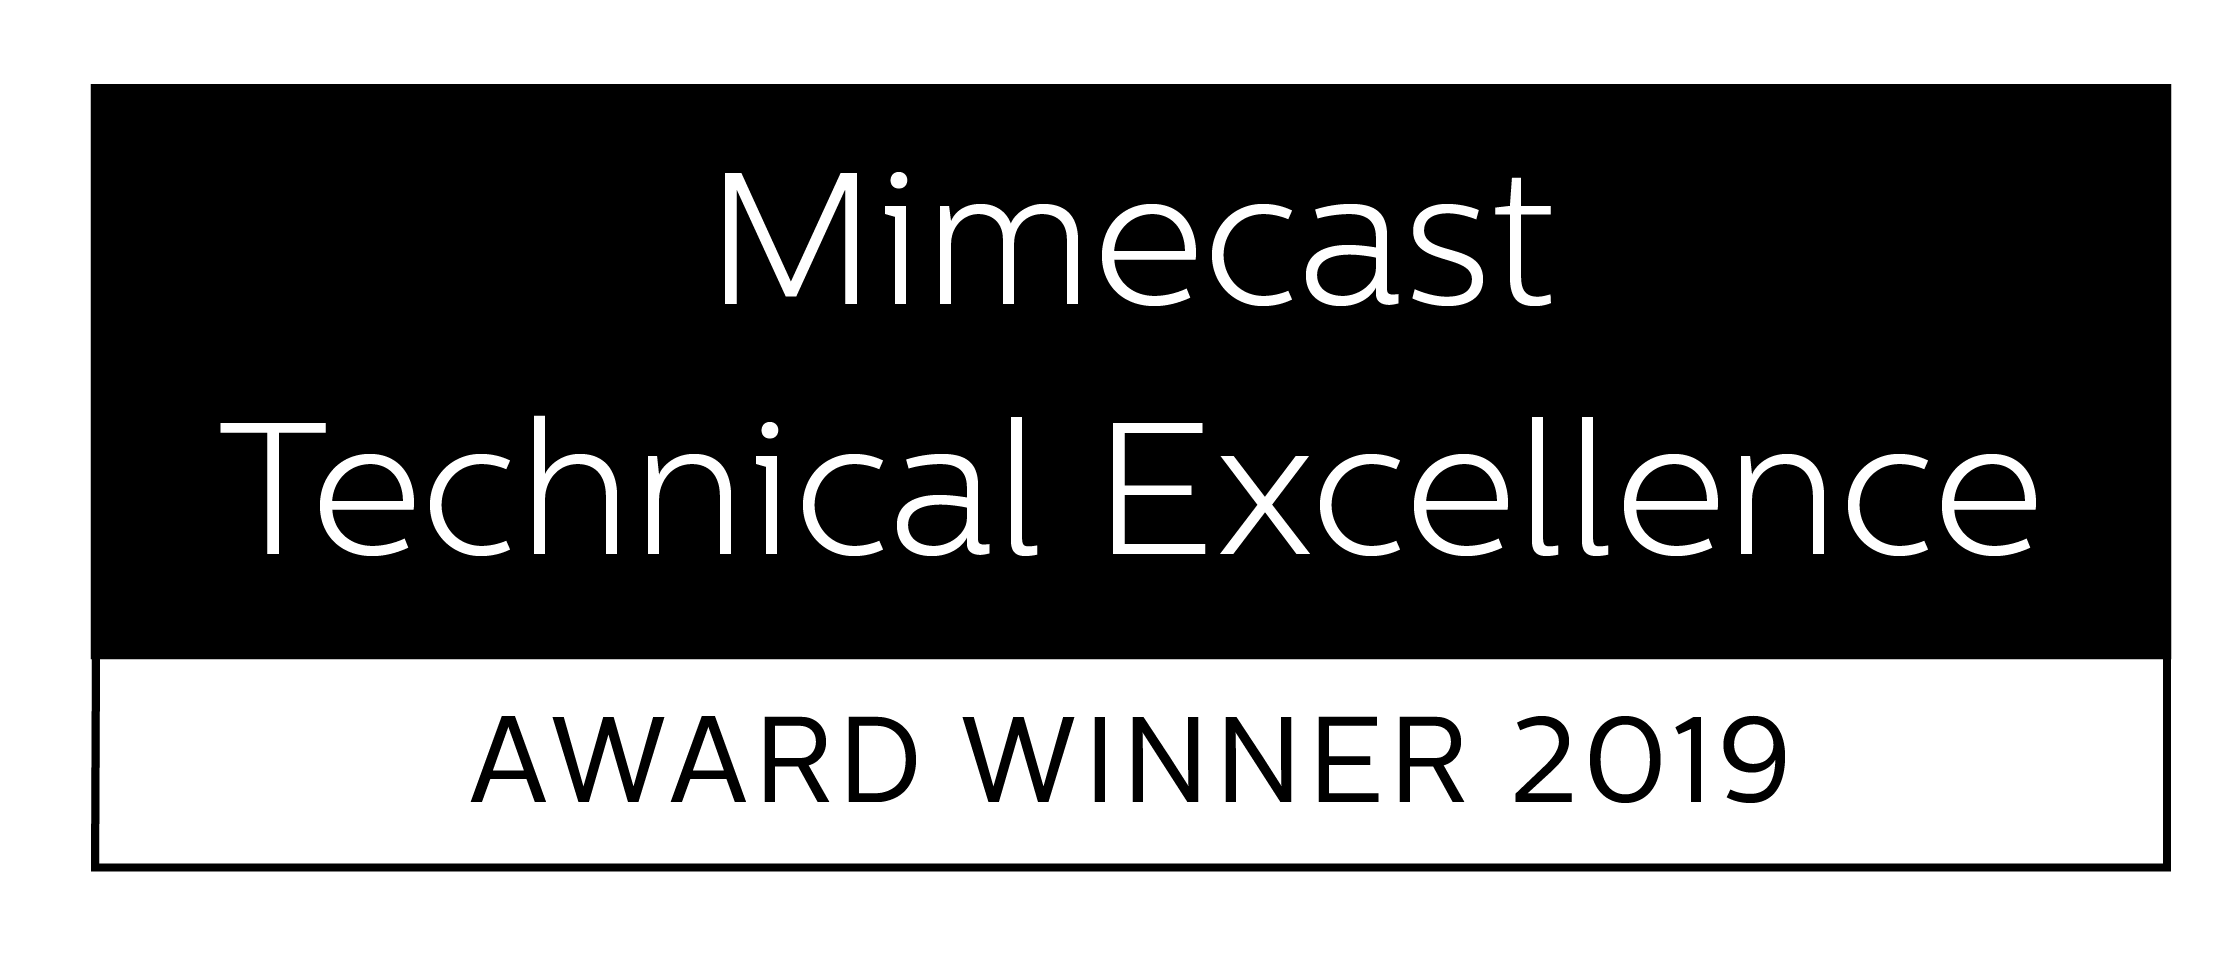 Mimecast technical excellence award